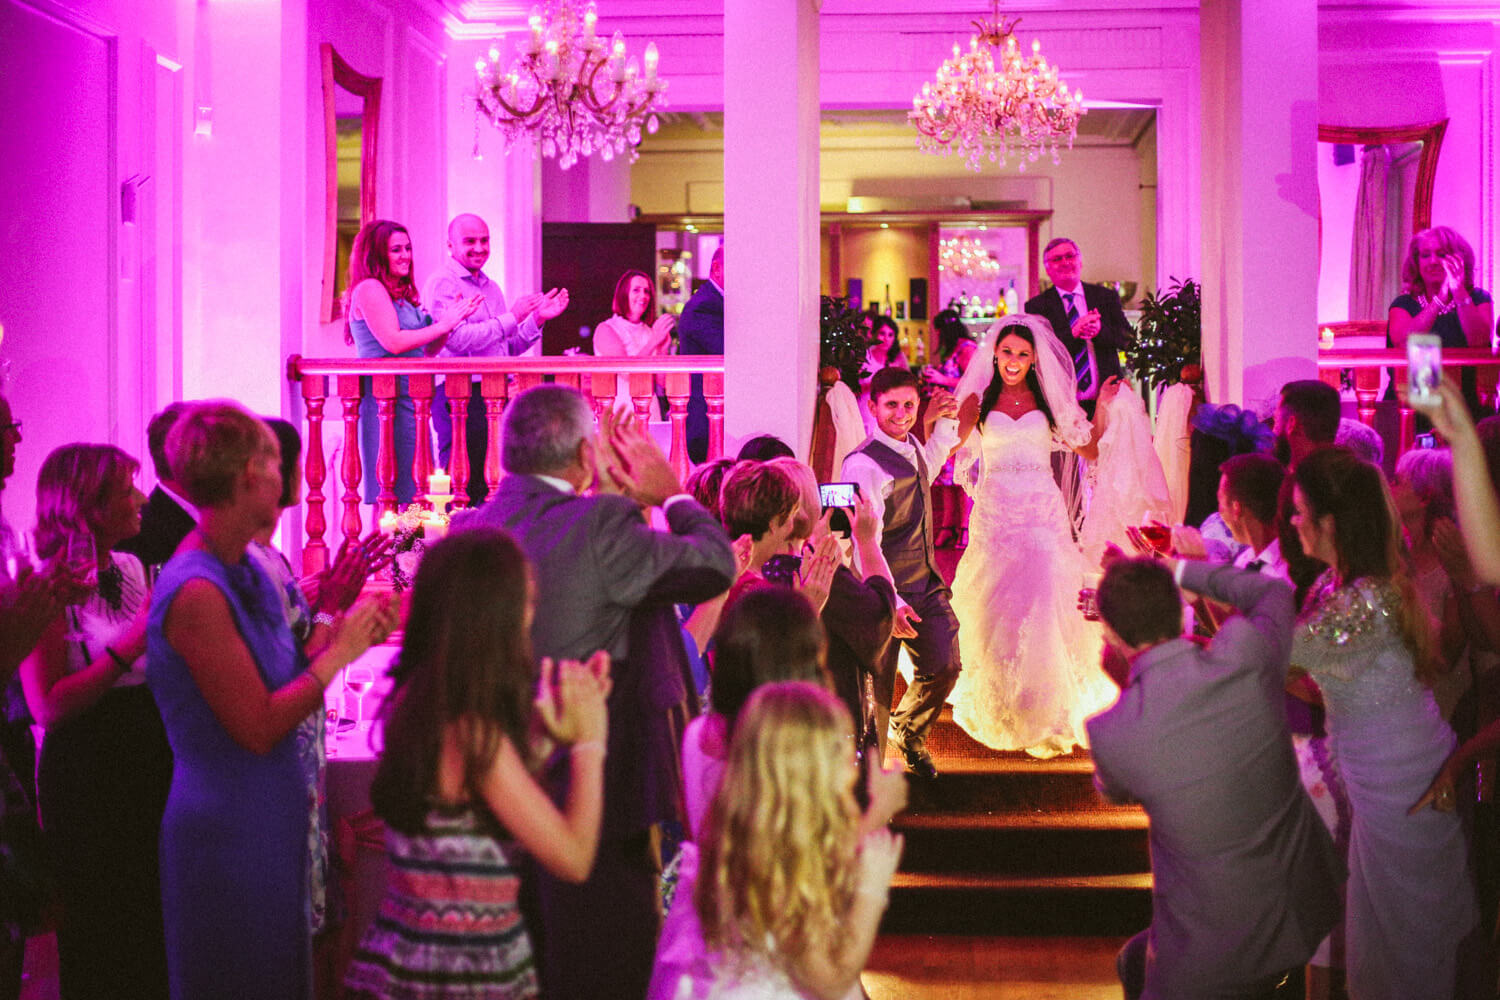 Colourful photo of bride and groom making their way to dance floor